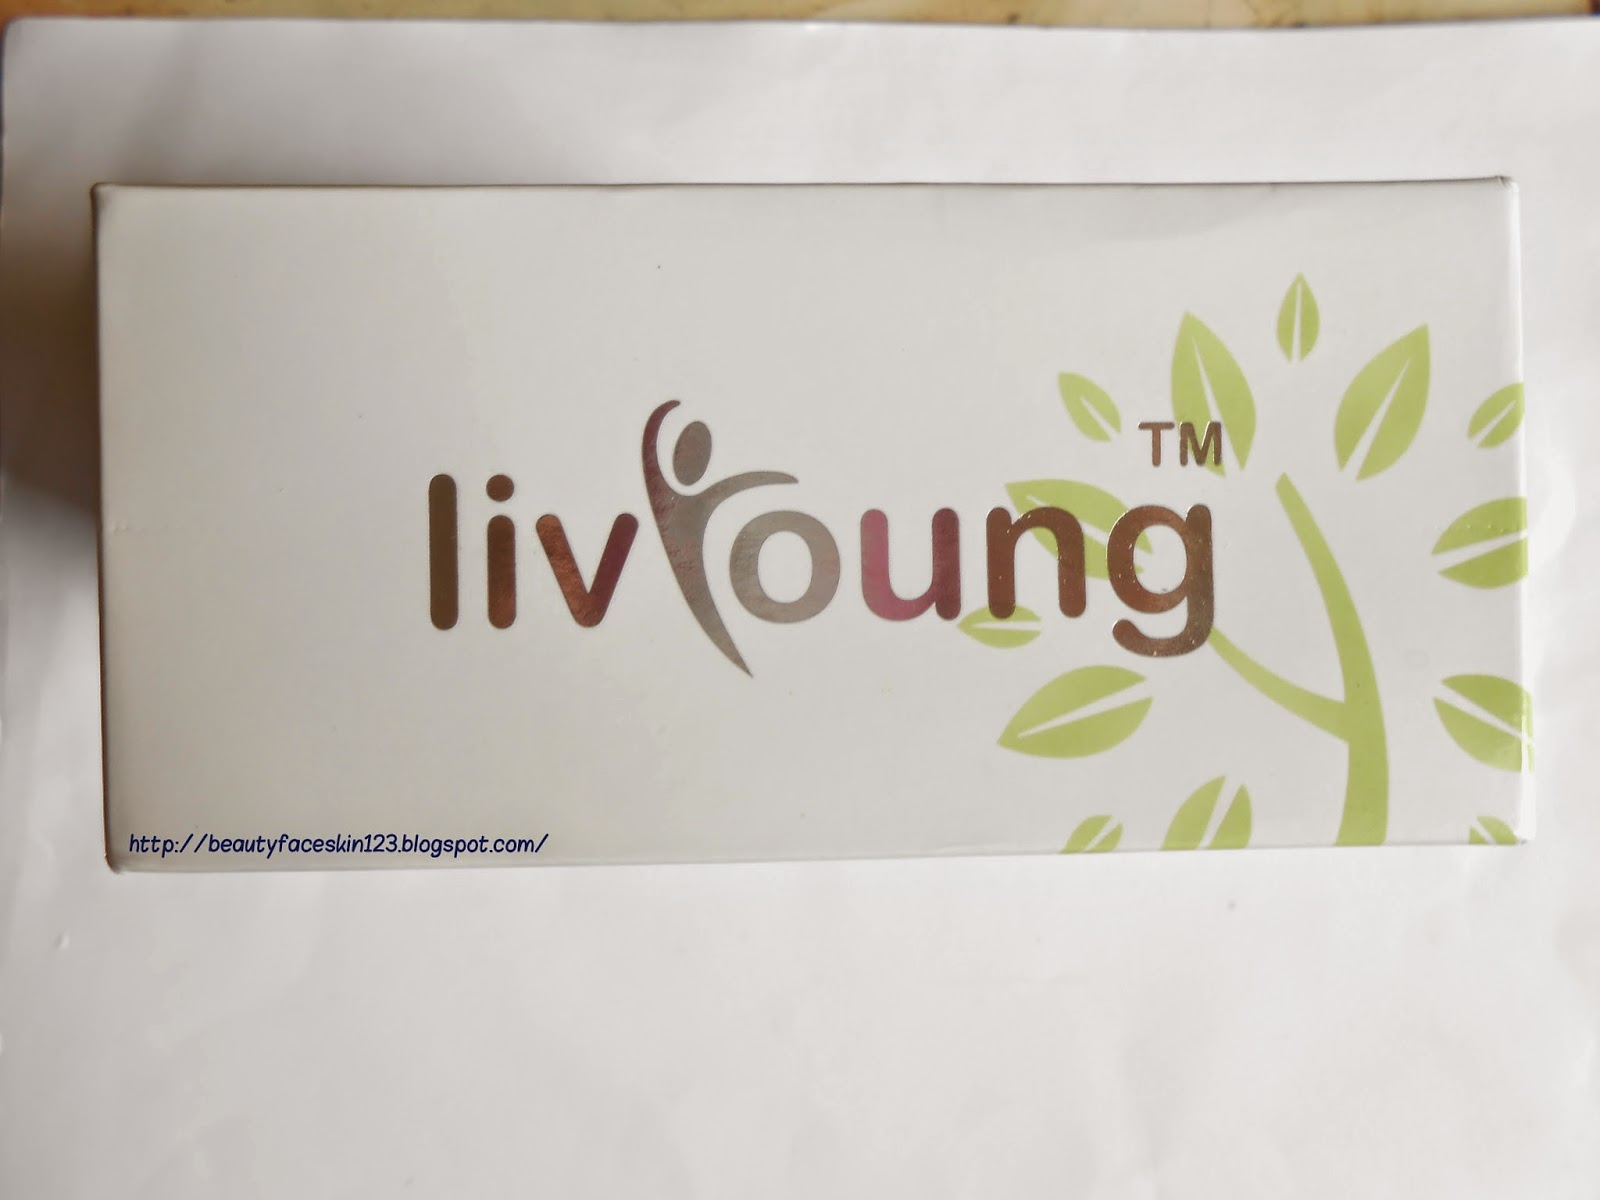 LIVYOUNG INTENSE BRIGHTENING FACIAL MASK